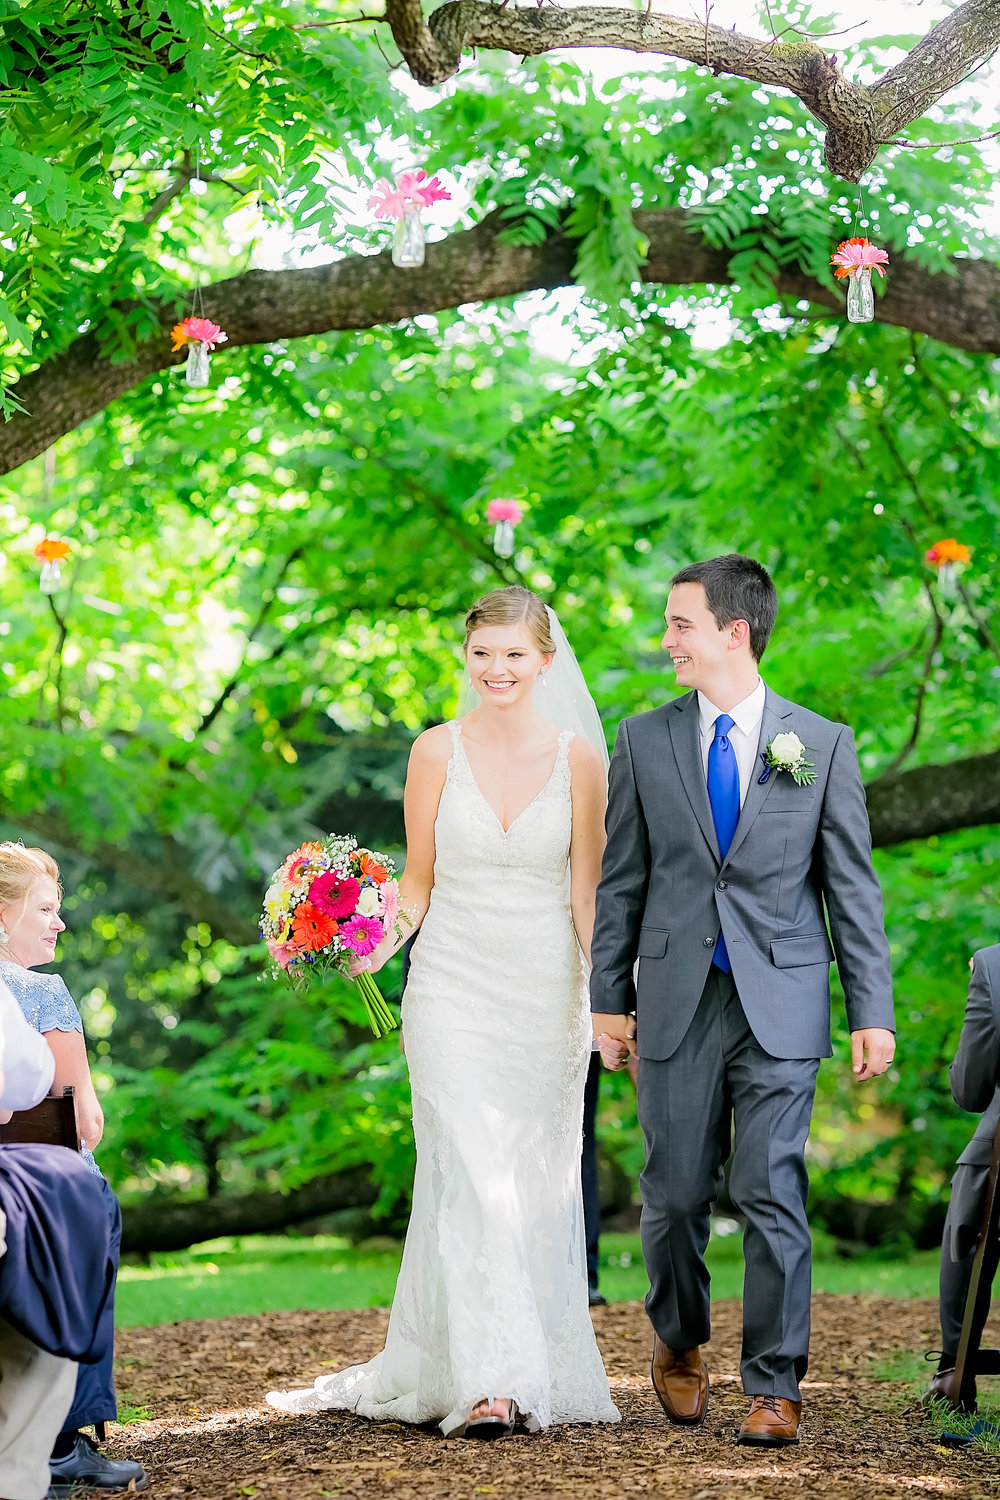 Hot Springs, NC wedding, East Tennessee Wedding photography, wedding ceremony, bride and groom